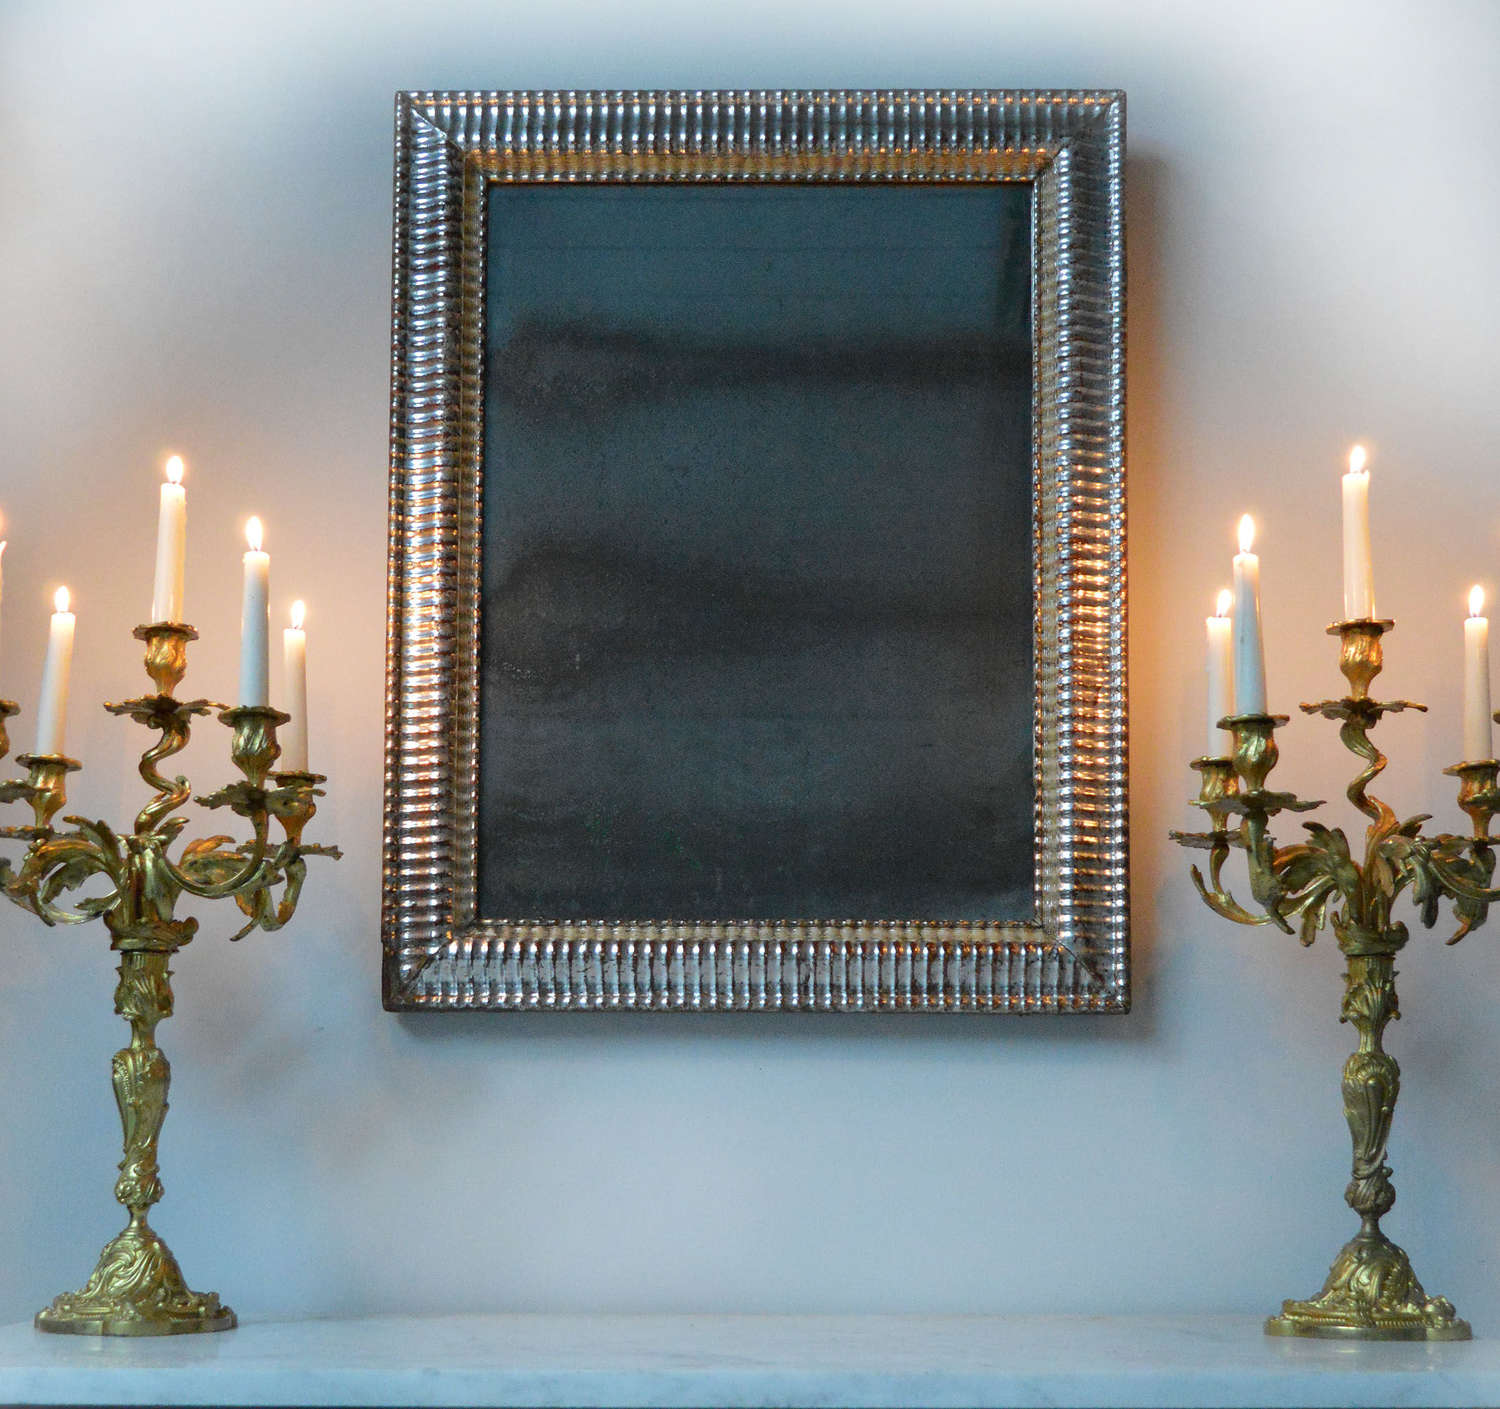 Rare c1830-40 Louis Philippe Silver gilt ripple frame mirror